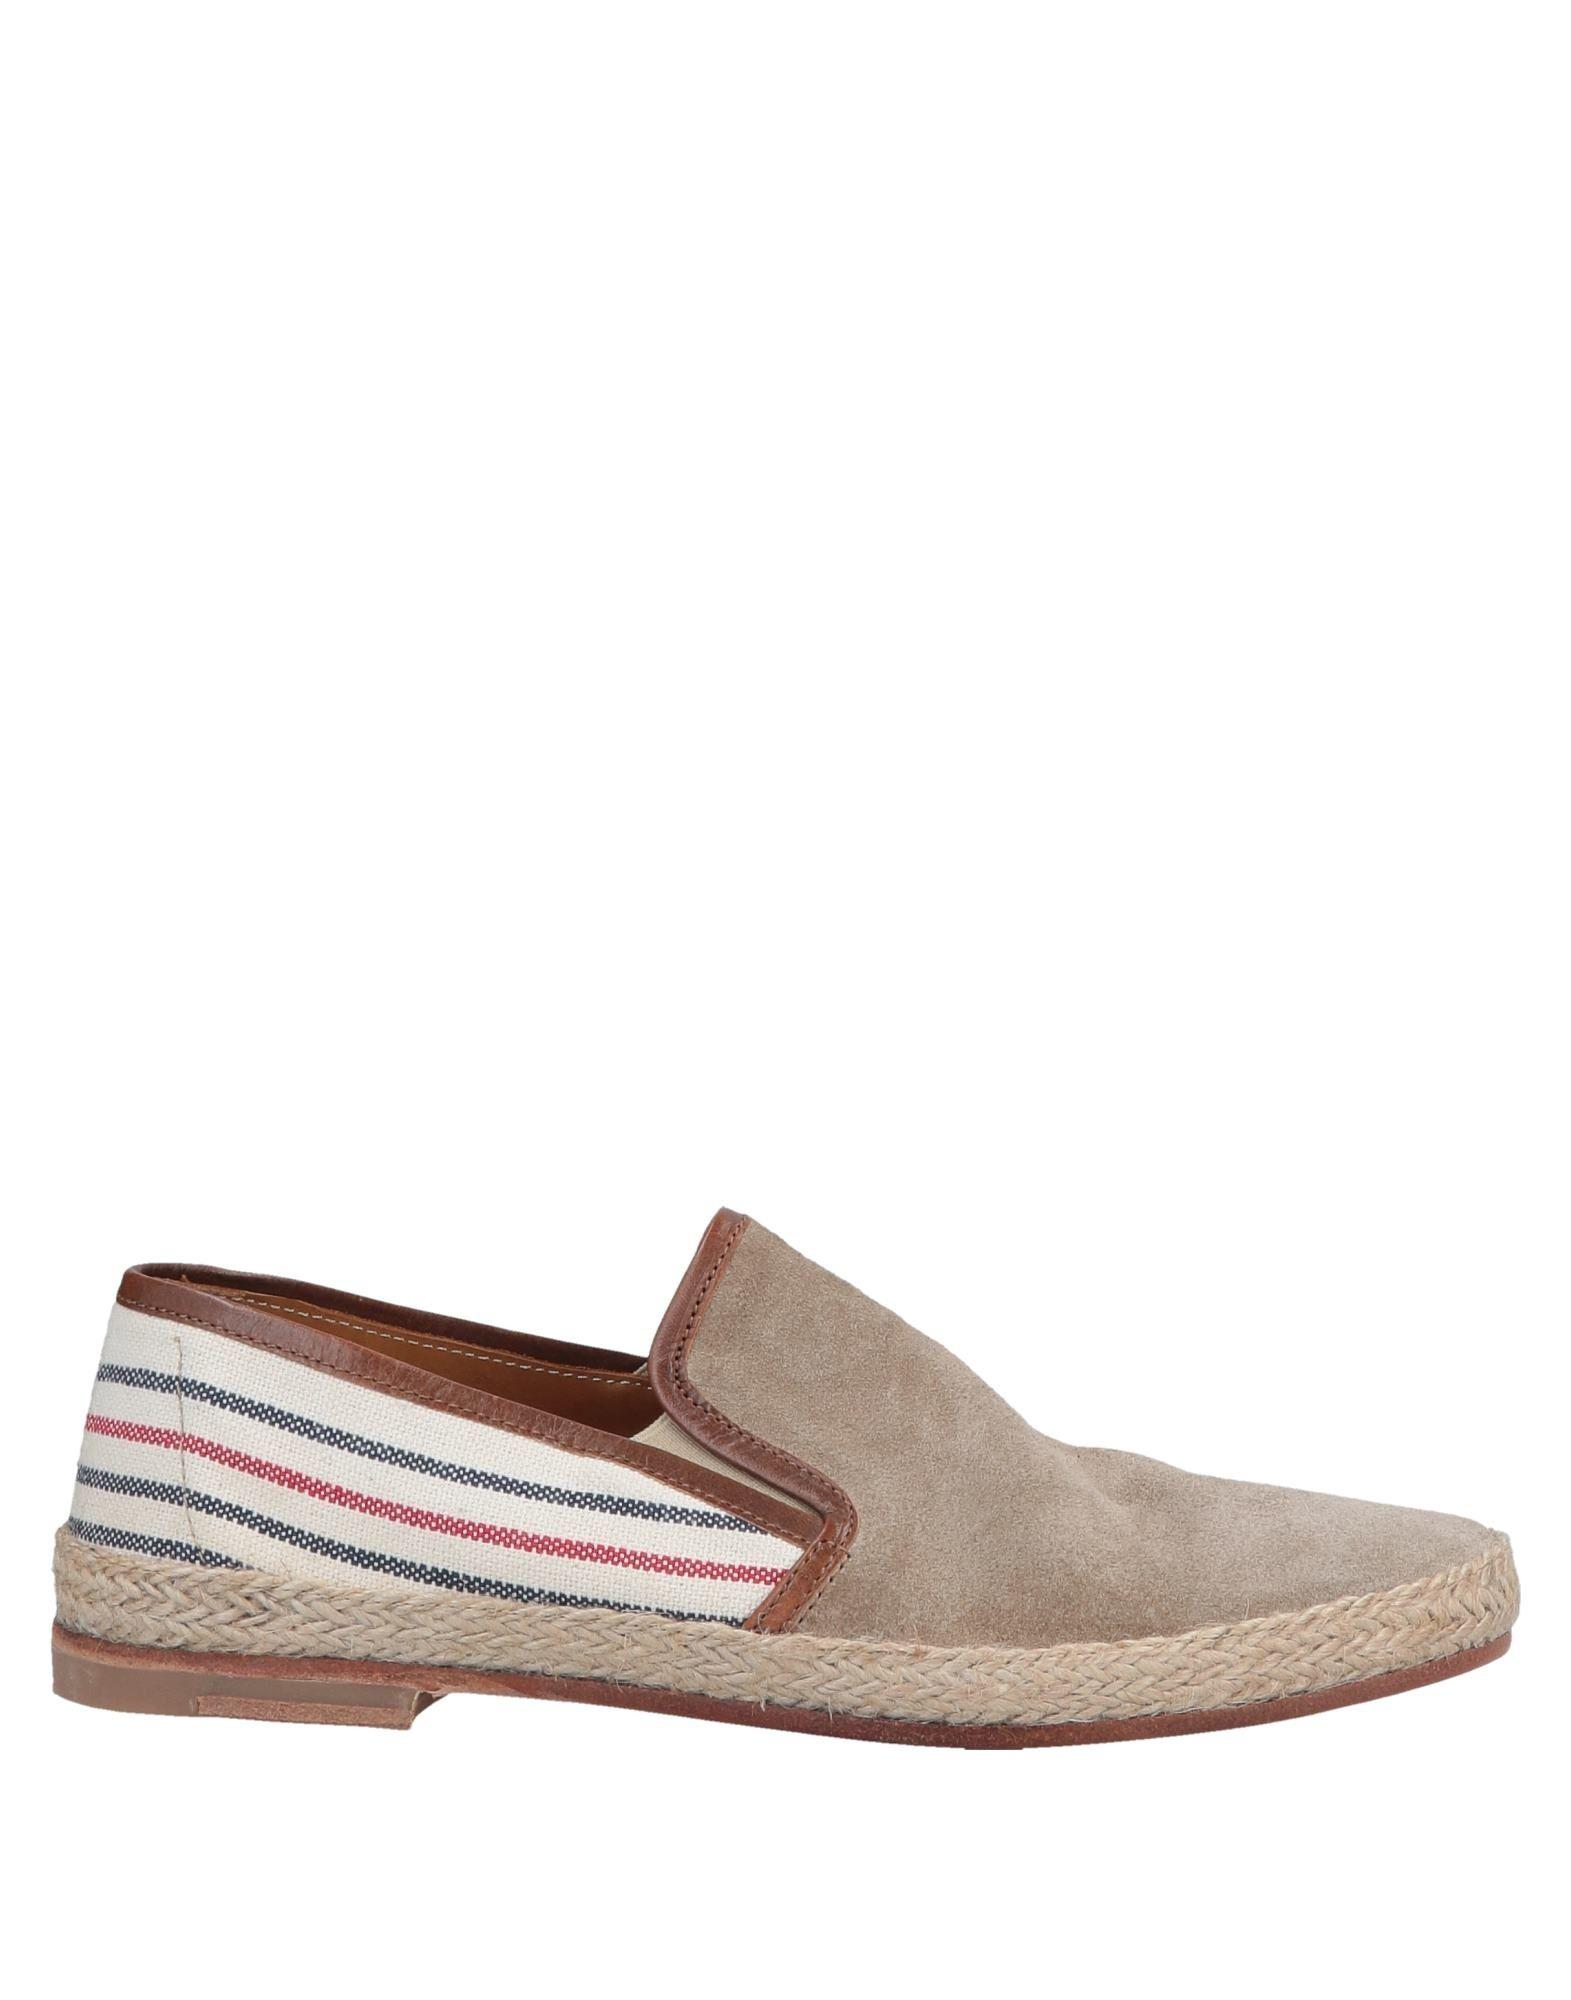 2bf584e4379 Lyst - N.D.C. Made By Hand Espadrilles in Natural for Men